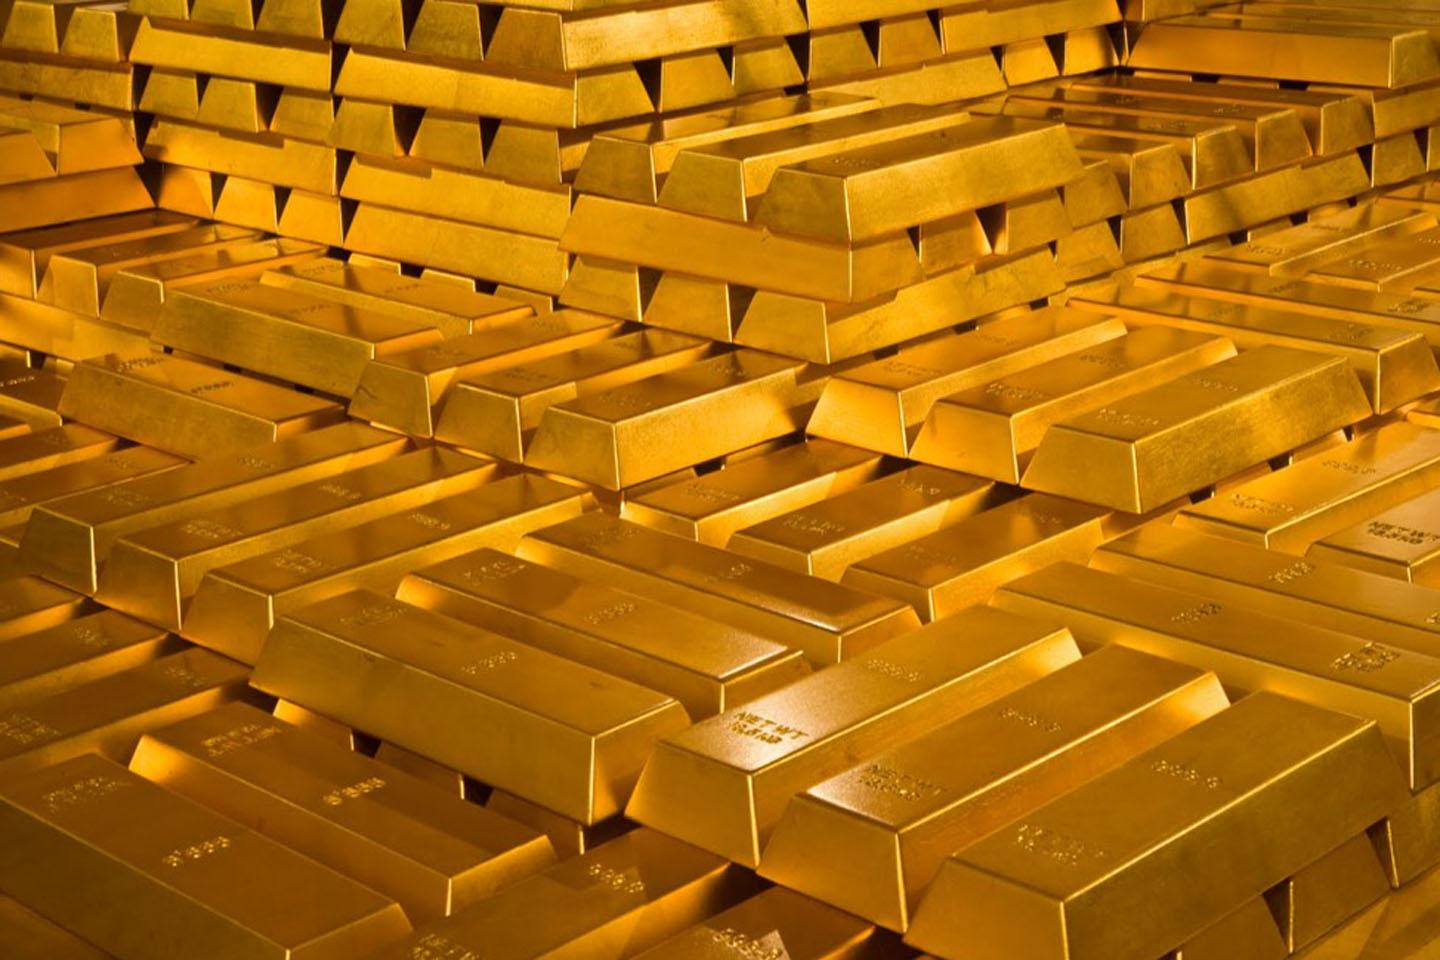 Bellevue ups gold resources by nearly 50%